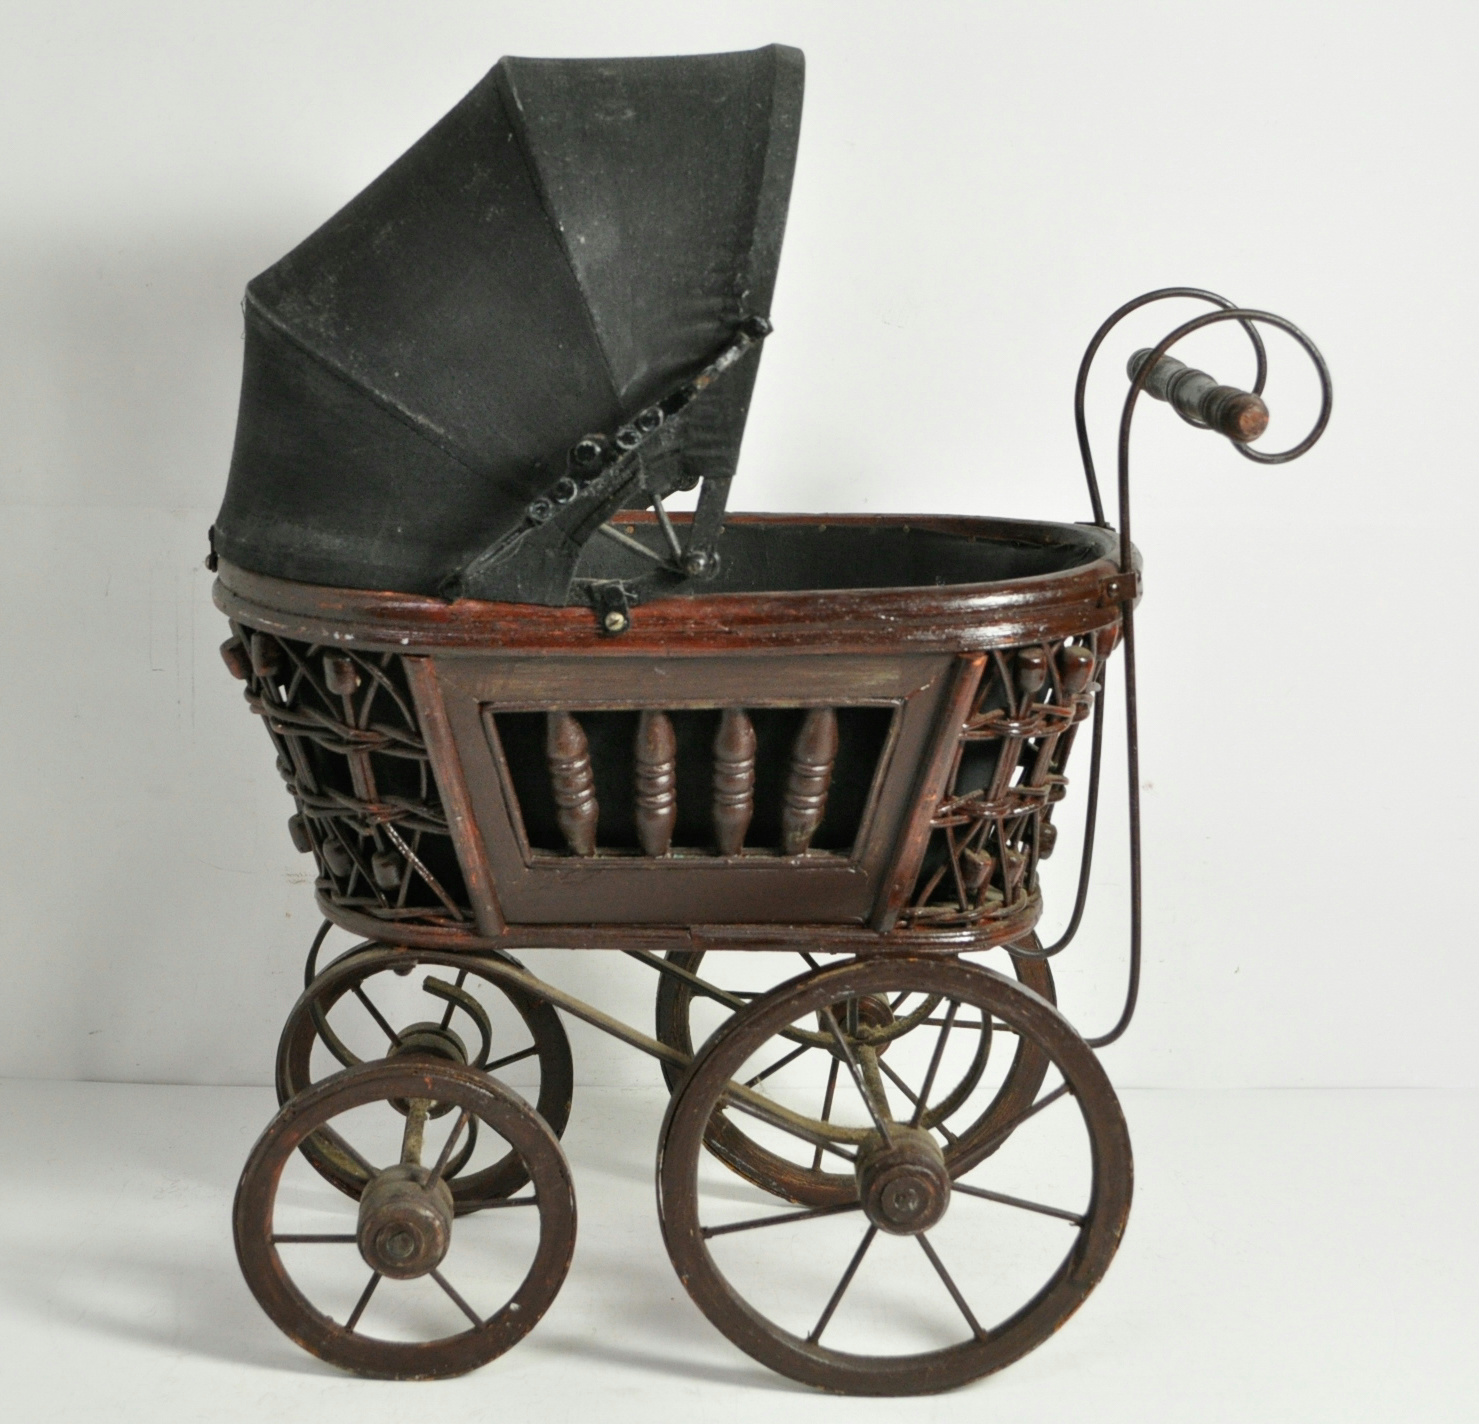 Vintage decorative metal carriage well